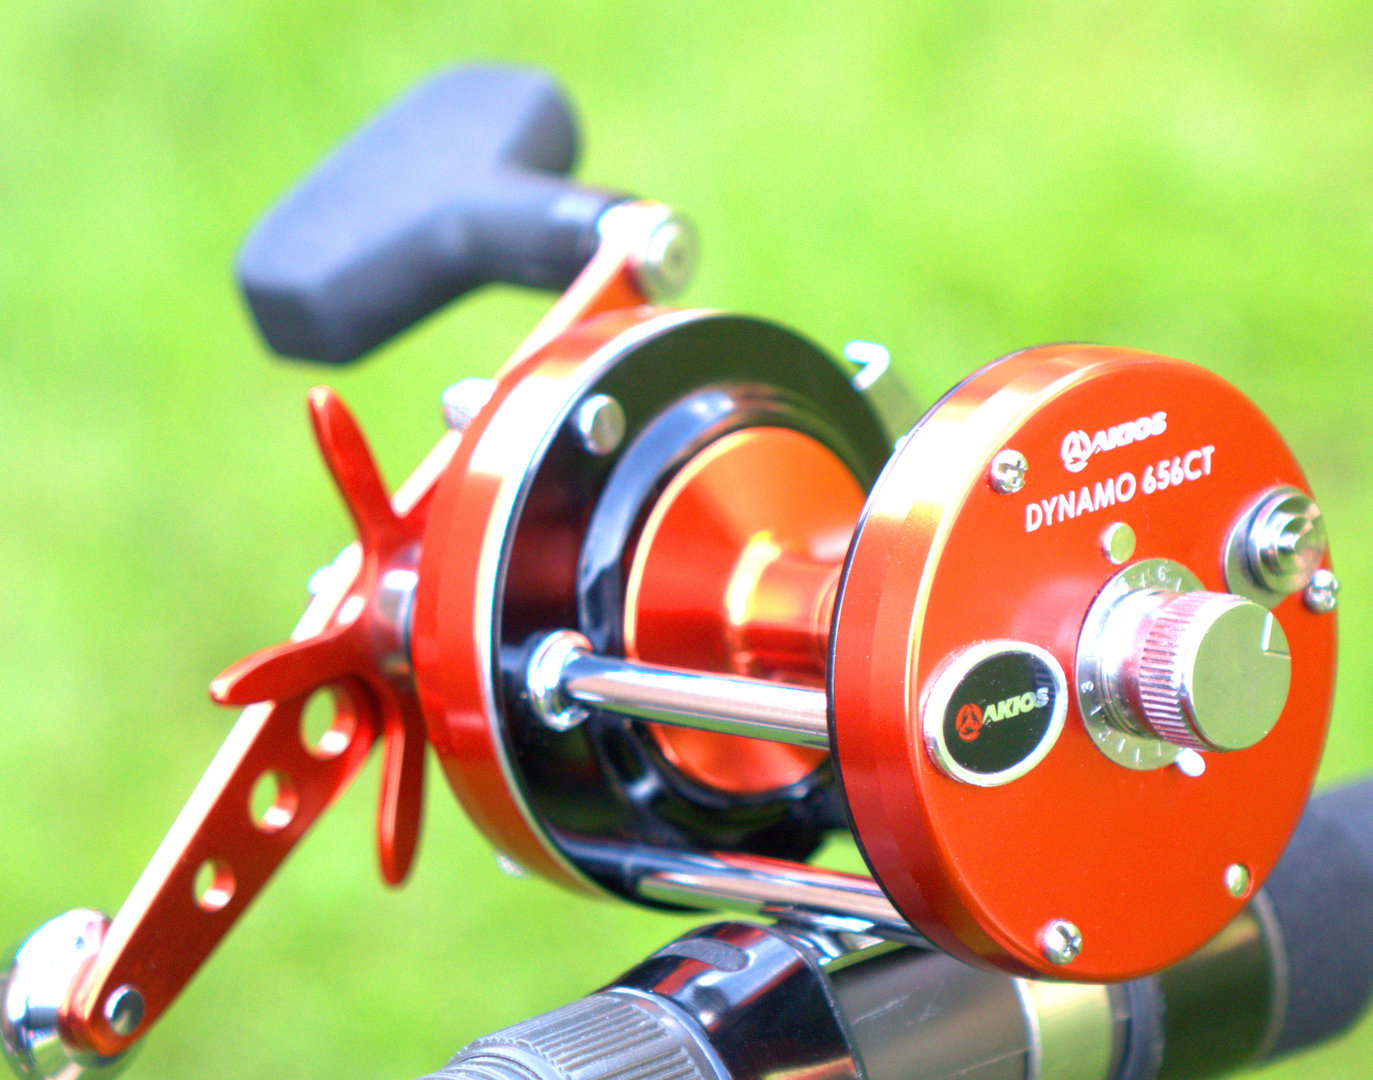 Akios Dynamo 656 Ct Multiplier Orange